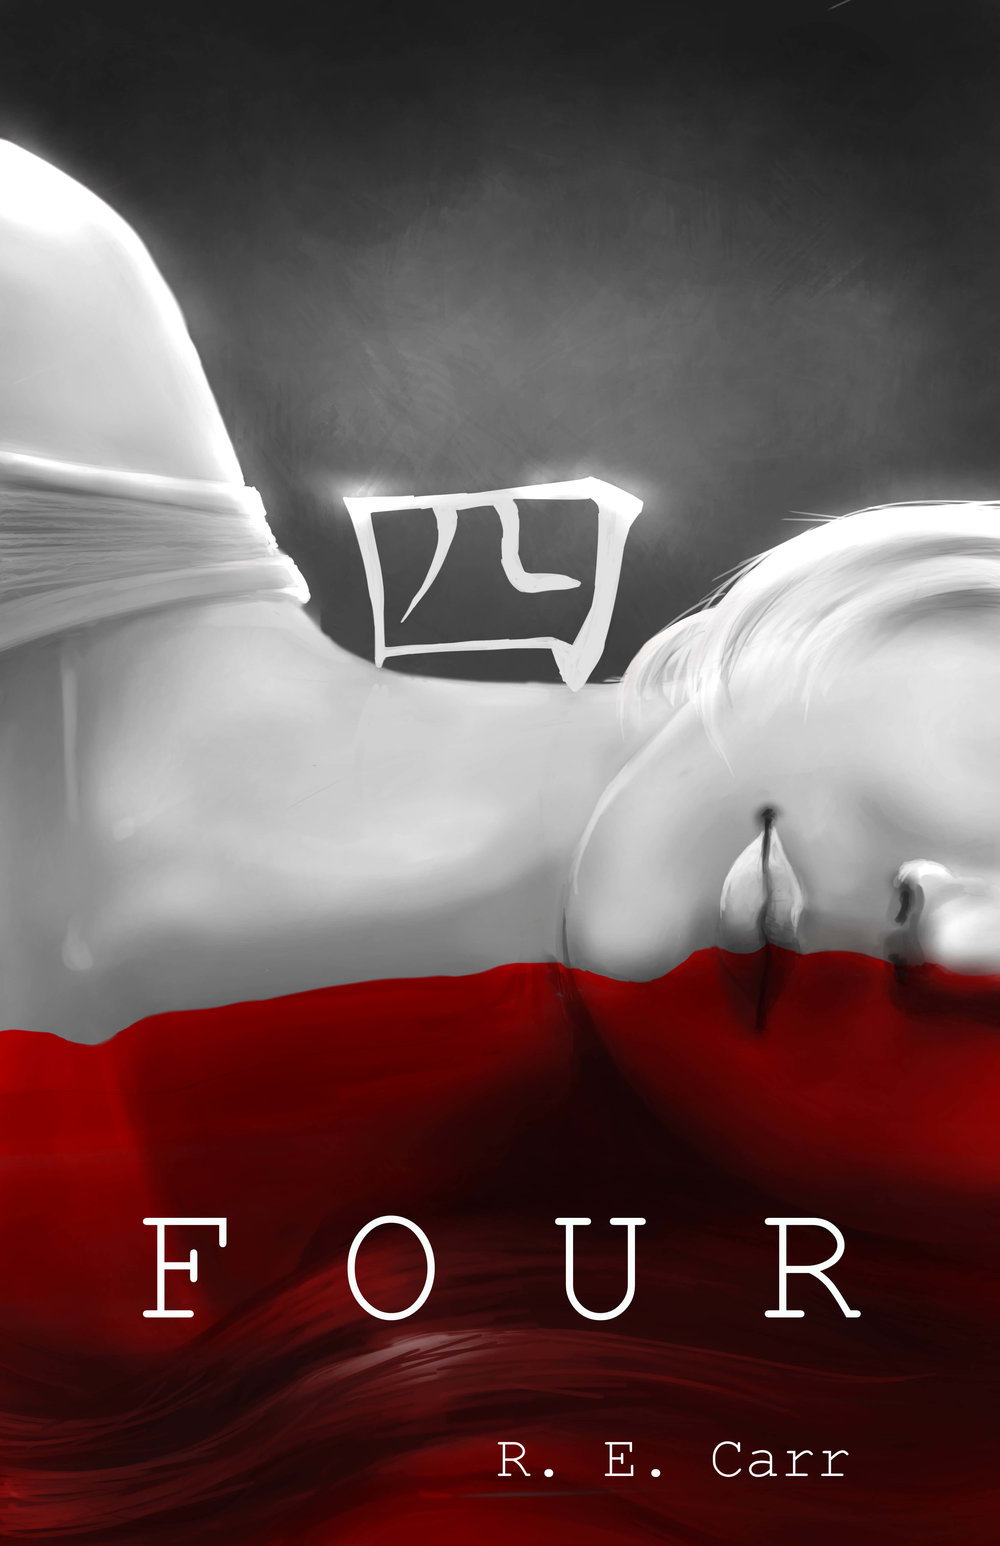 Four - Finding a job is never easy, and the only employment Gail usually finds is acting as Girl Friday for the mob. Lucky for Gail, Georgia Sutherland has just the job for her—that is, if she can handle working nights, managing a little blood, and a boss who's been dead for centuries.In a single interview, Gail's world turns upside down as she discovers that all she's seen in Hollywood isn't quite true; vampires don't combust in sunlight, but they do fall in love.Are Georgia's stories enough to persuade Gail to take the gig catering to an antediluvian vampire who's thirsty for a new personal assistant? If Gail wants to live out the year and retire rich, she just needs to remember the Four Rules that govern undead society.